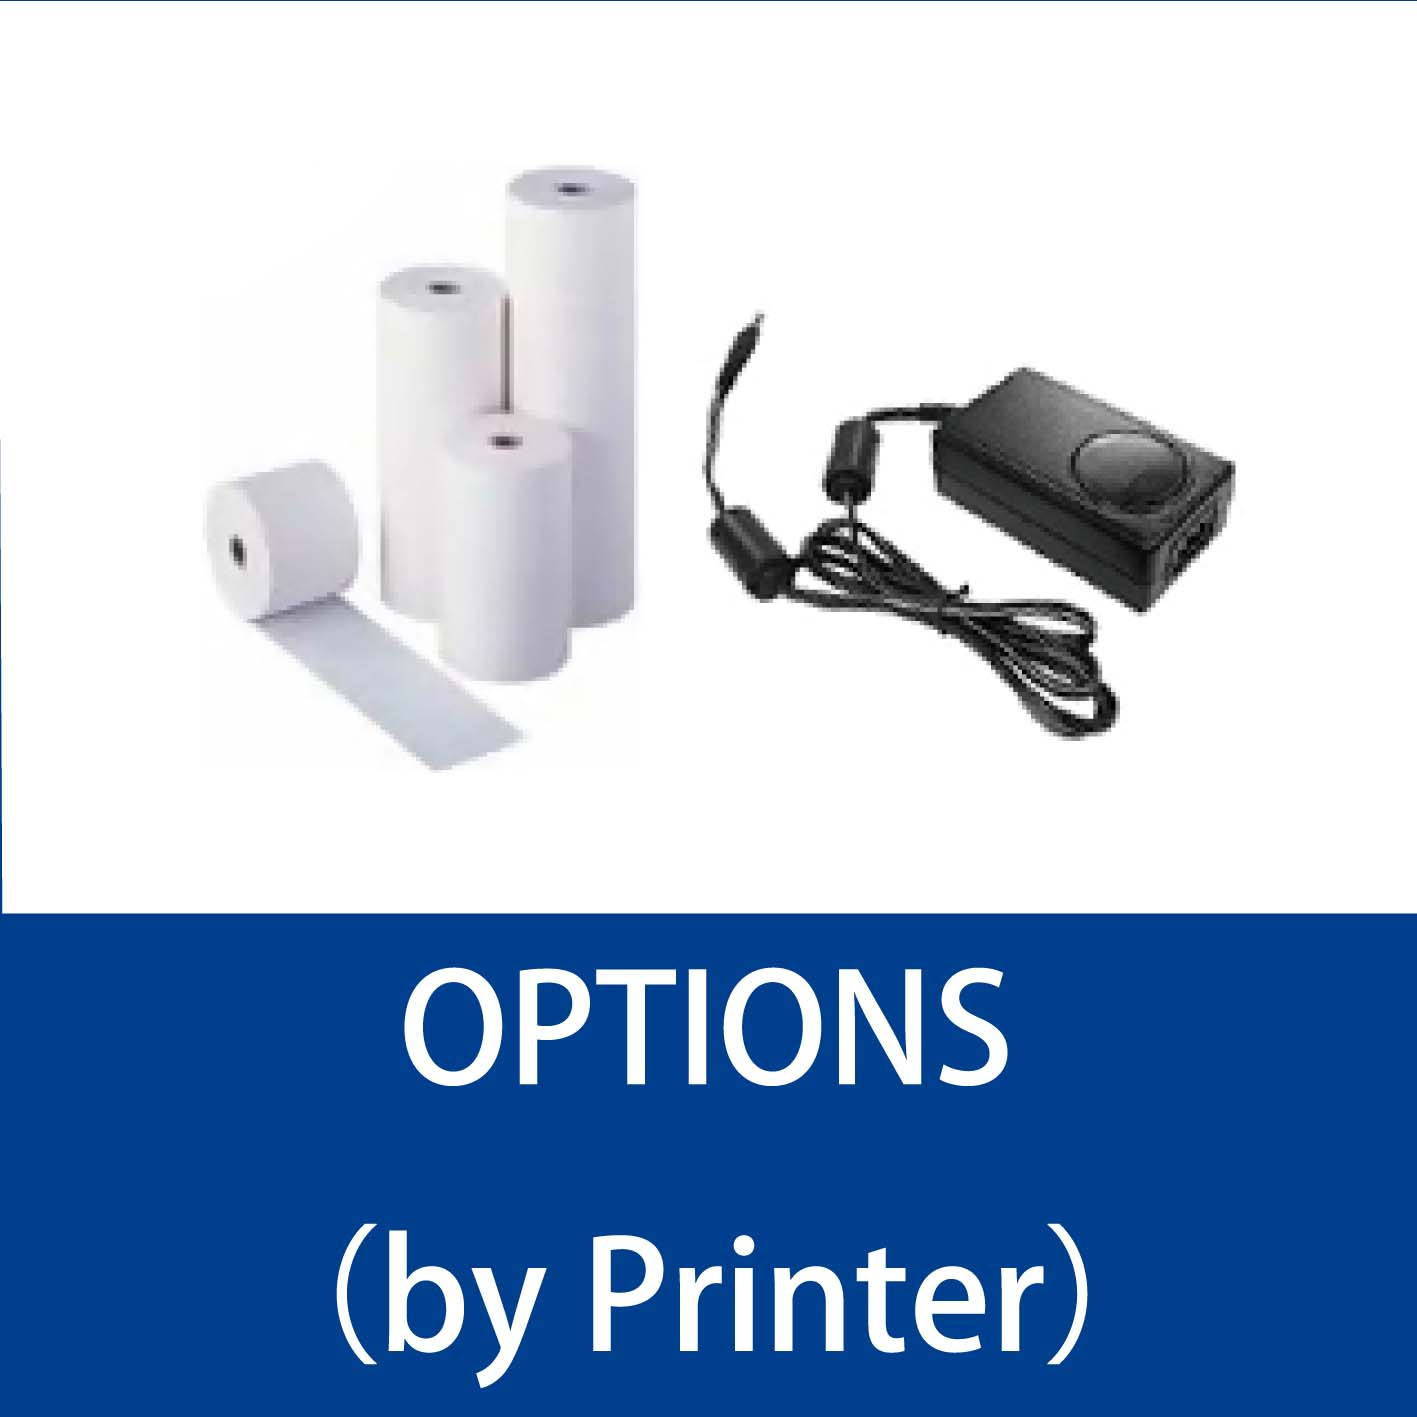 Printer Options